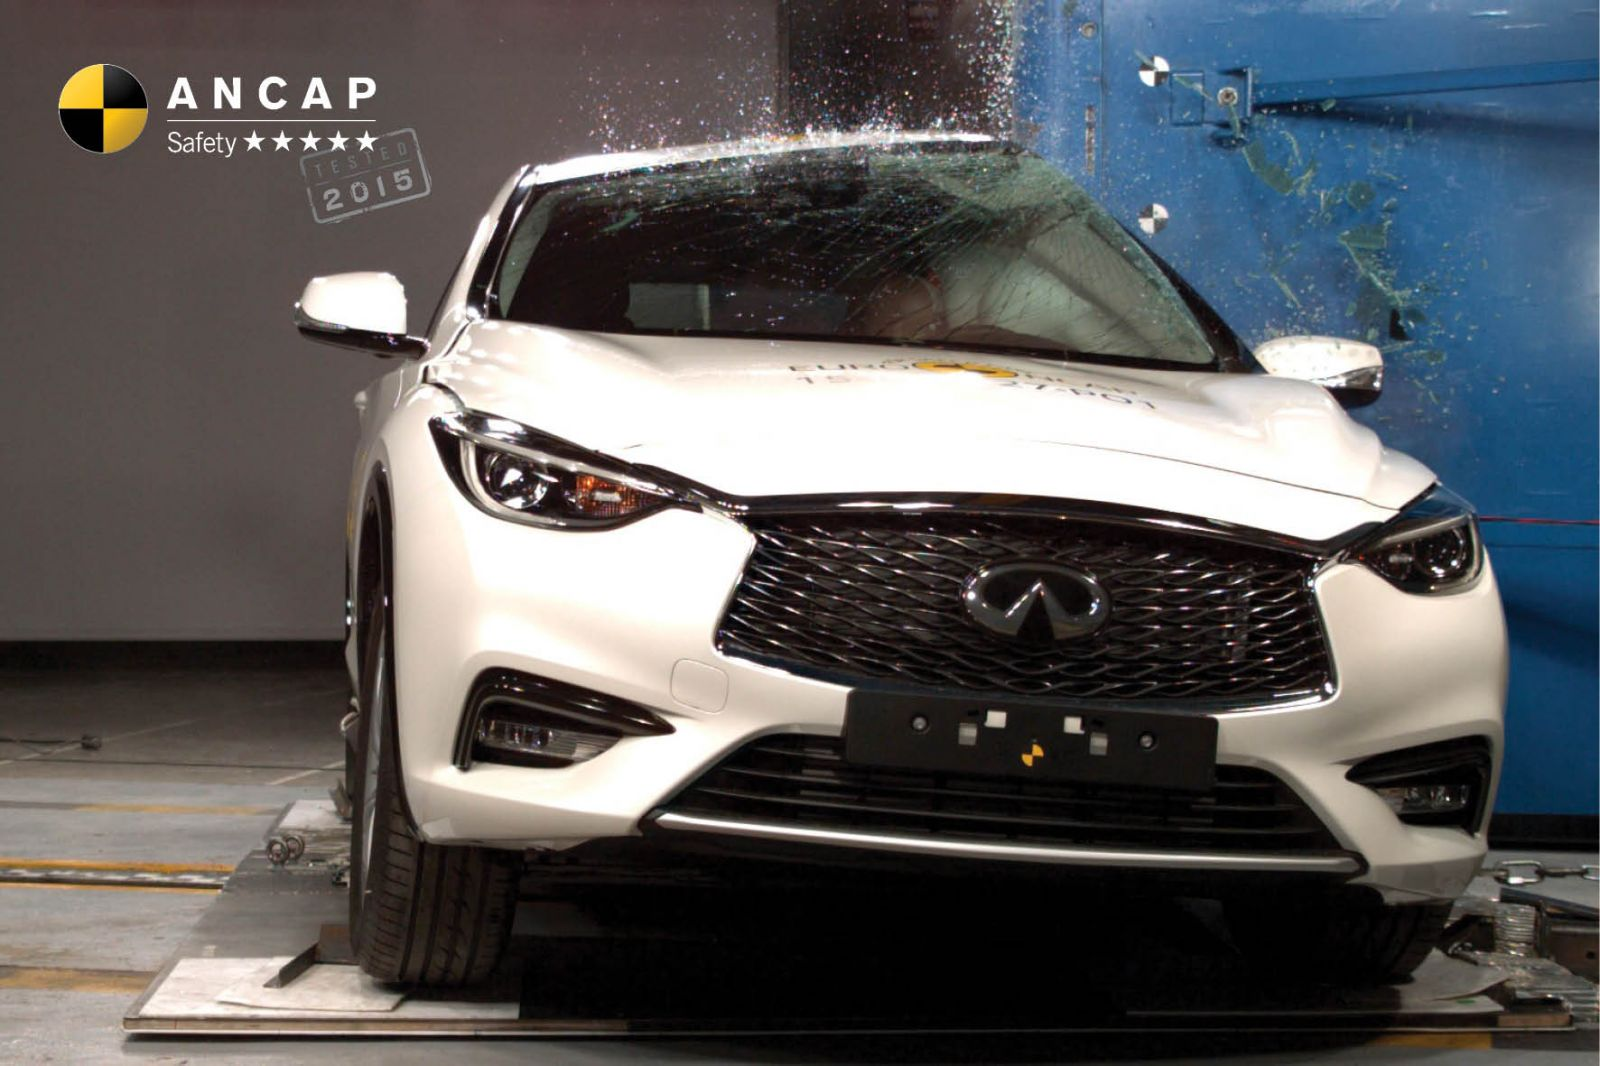 5-Star ANCAP Score Awarded To Infiniti Q30 Ahead Of Release